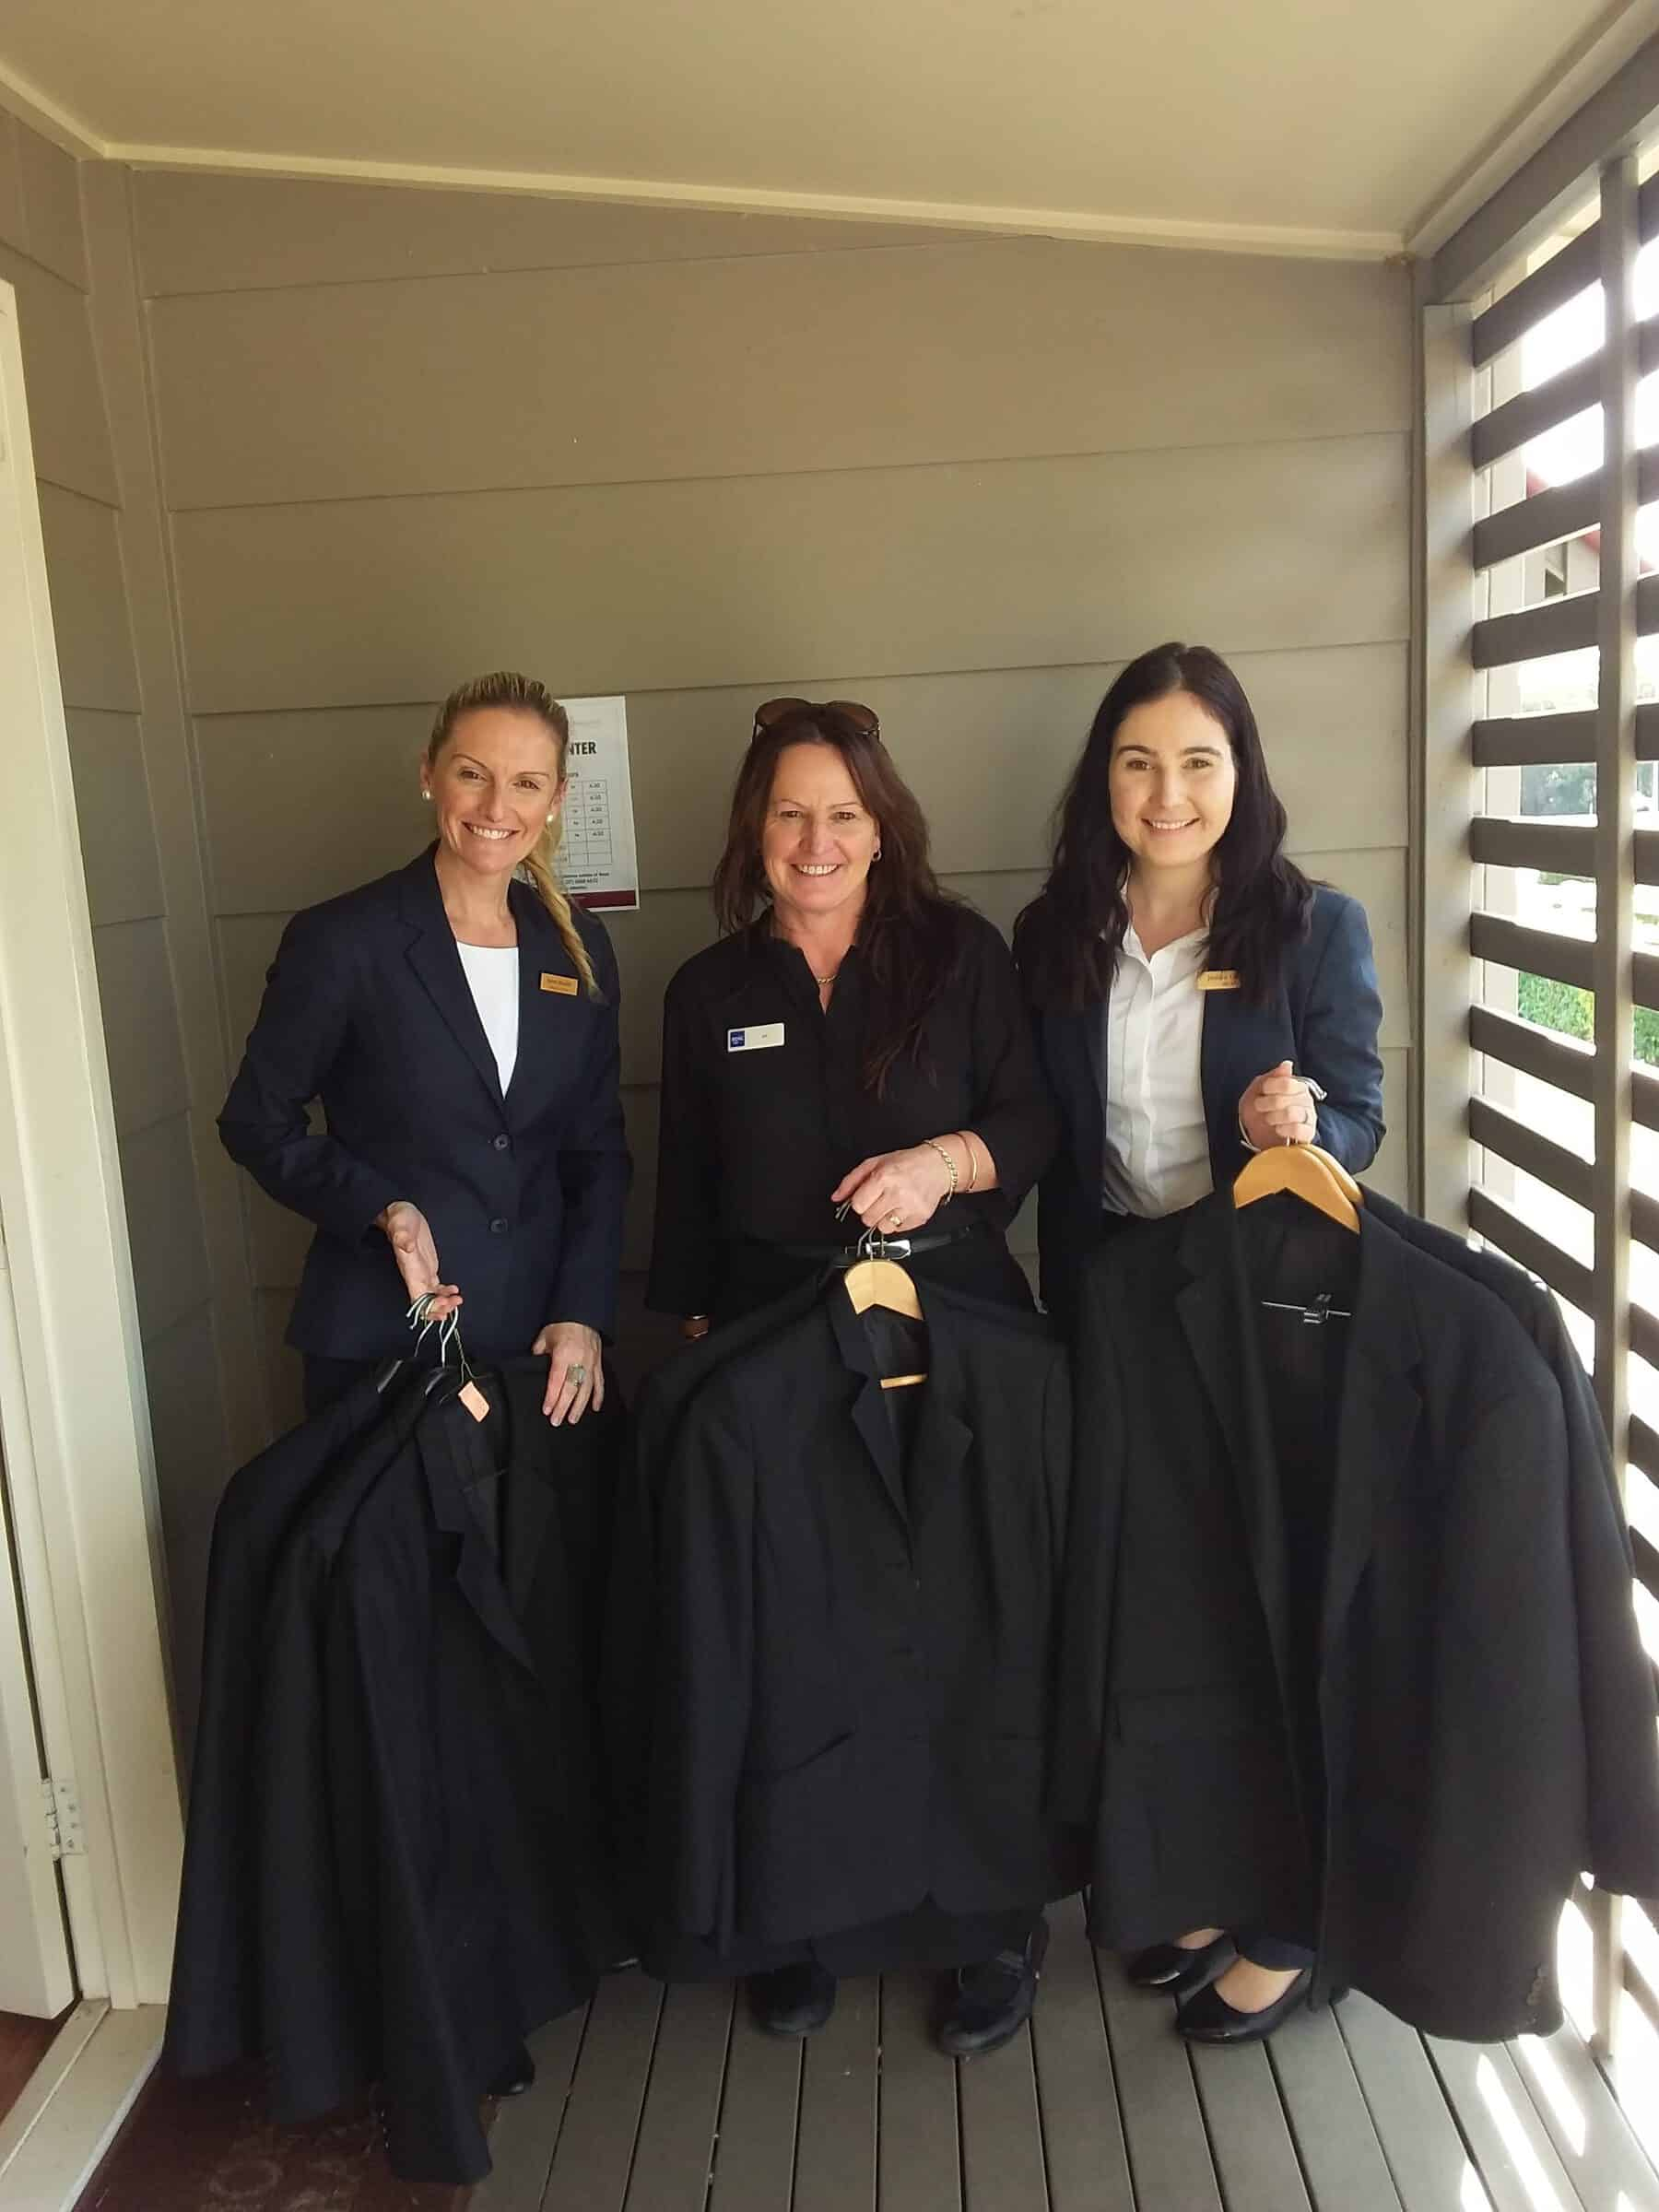 Traditional Funerals employees stand together holding donated uniforms